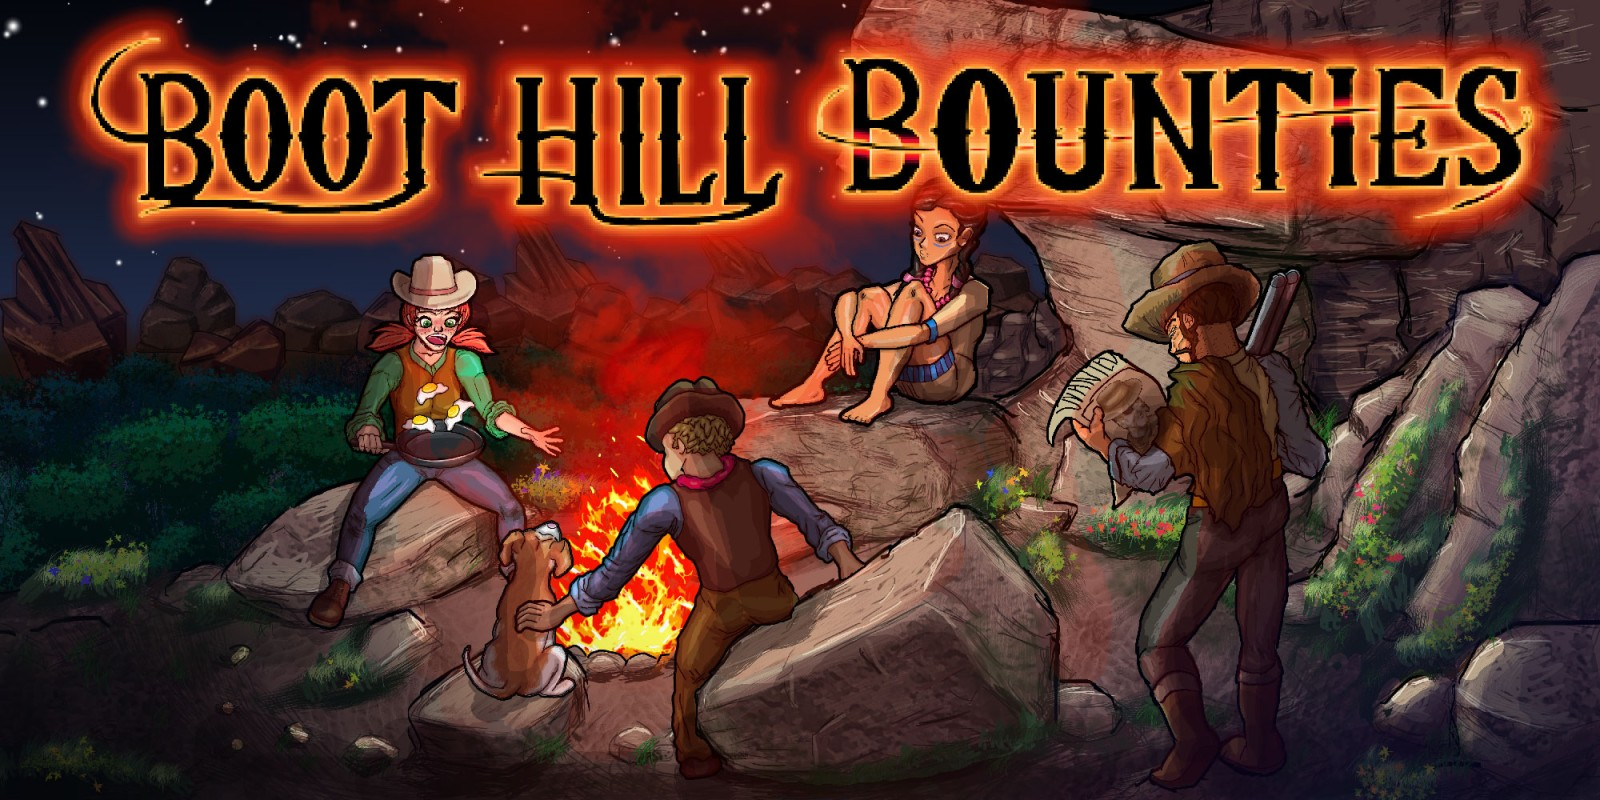 Boot Hill Bounties